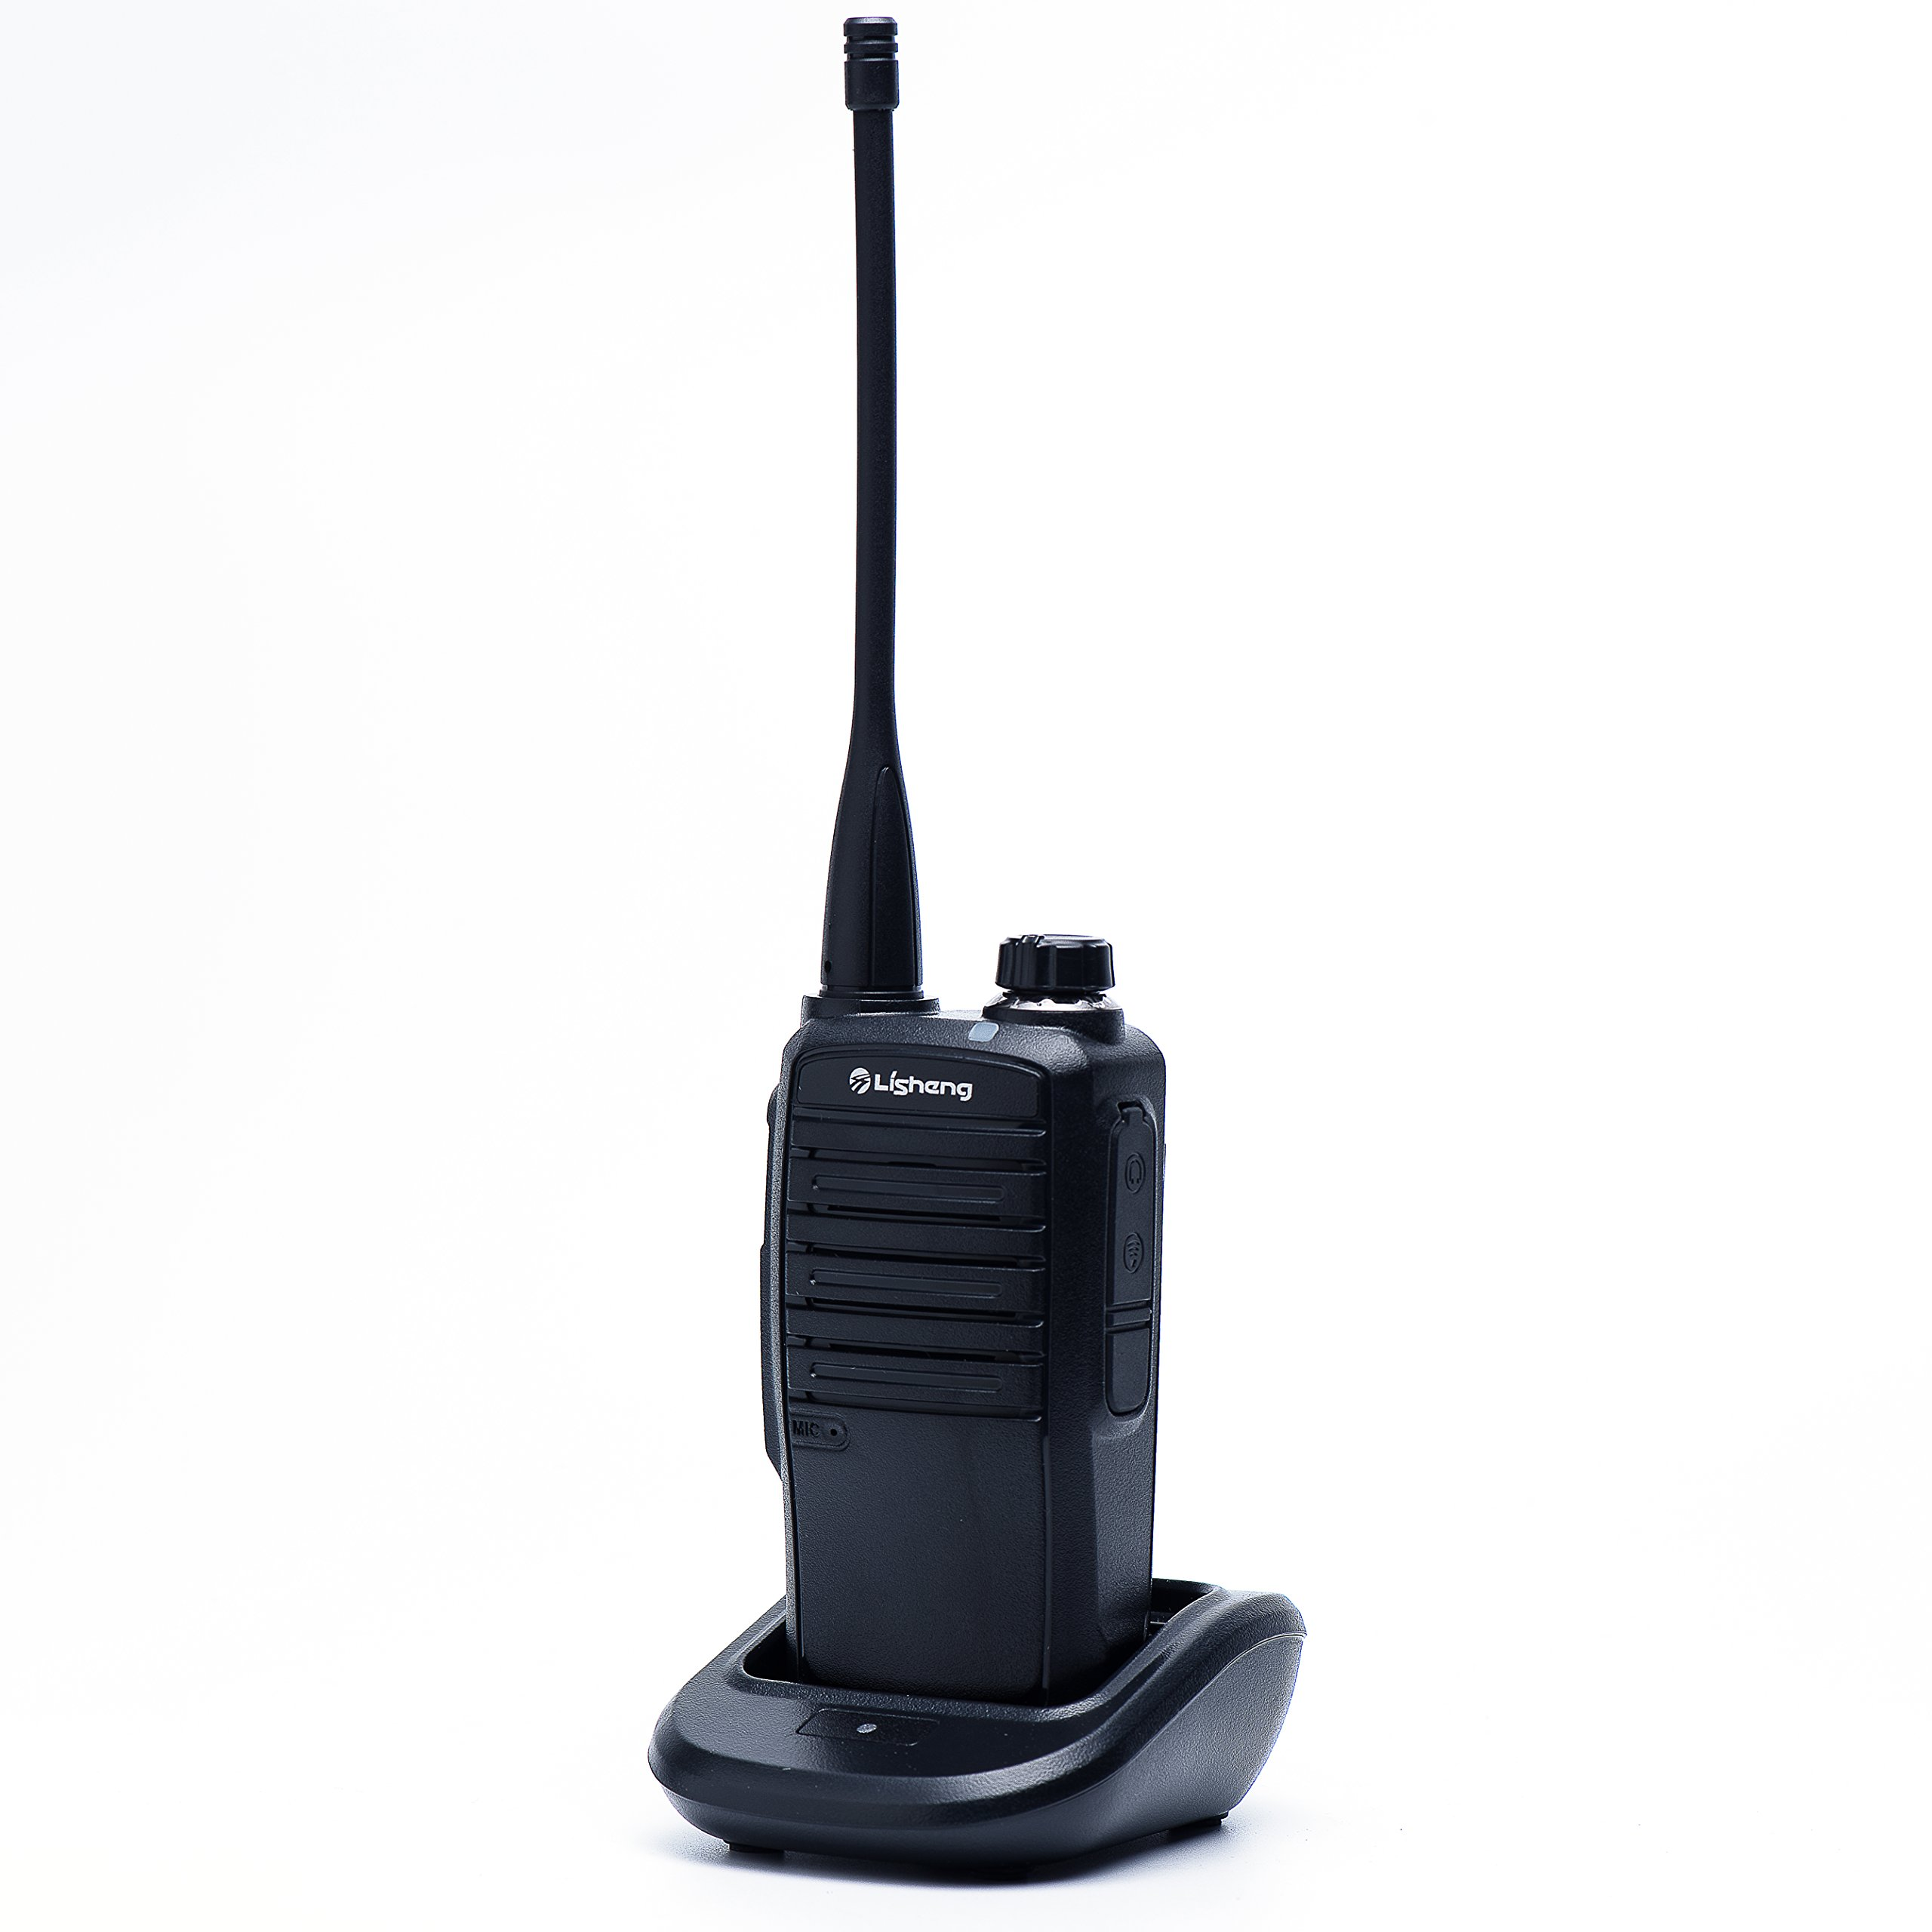 LISHENG LS-V60 4W Business Commercial Portable Two Way Radio (Black, Set 1)